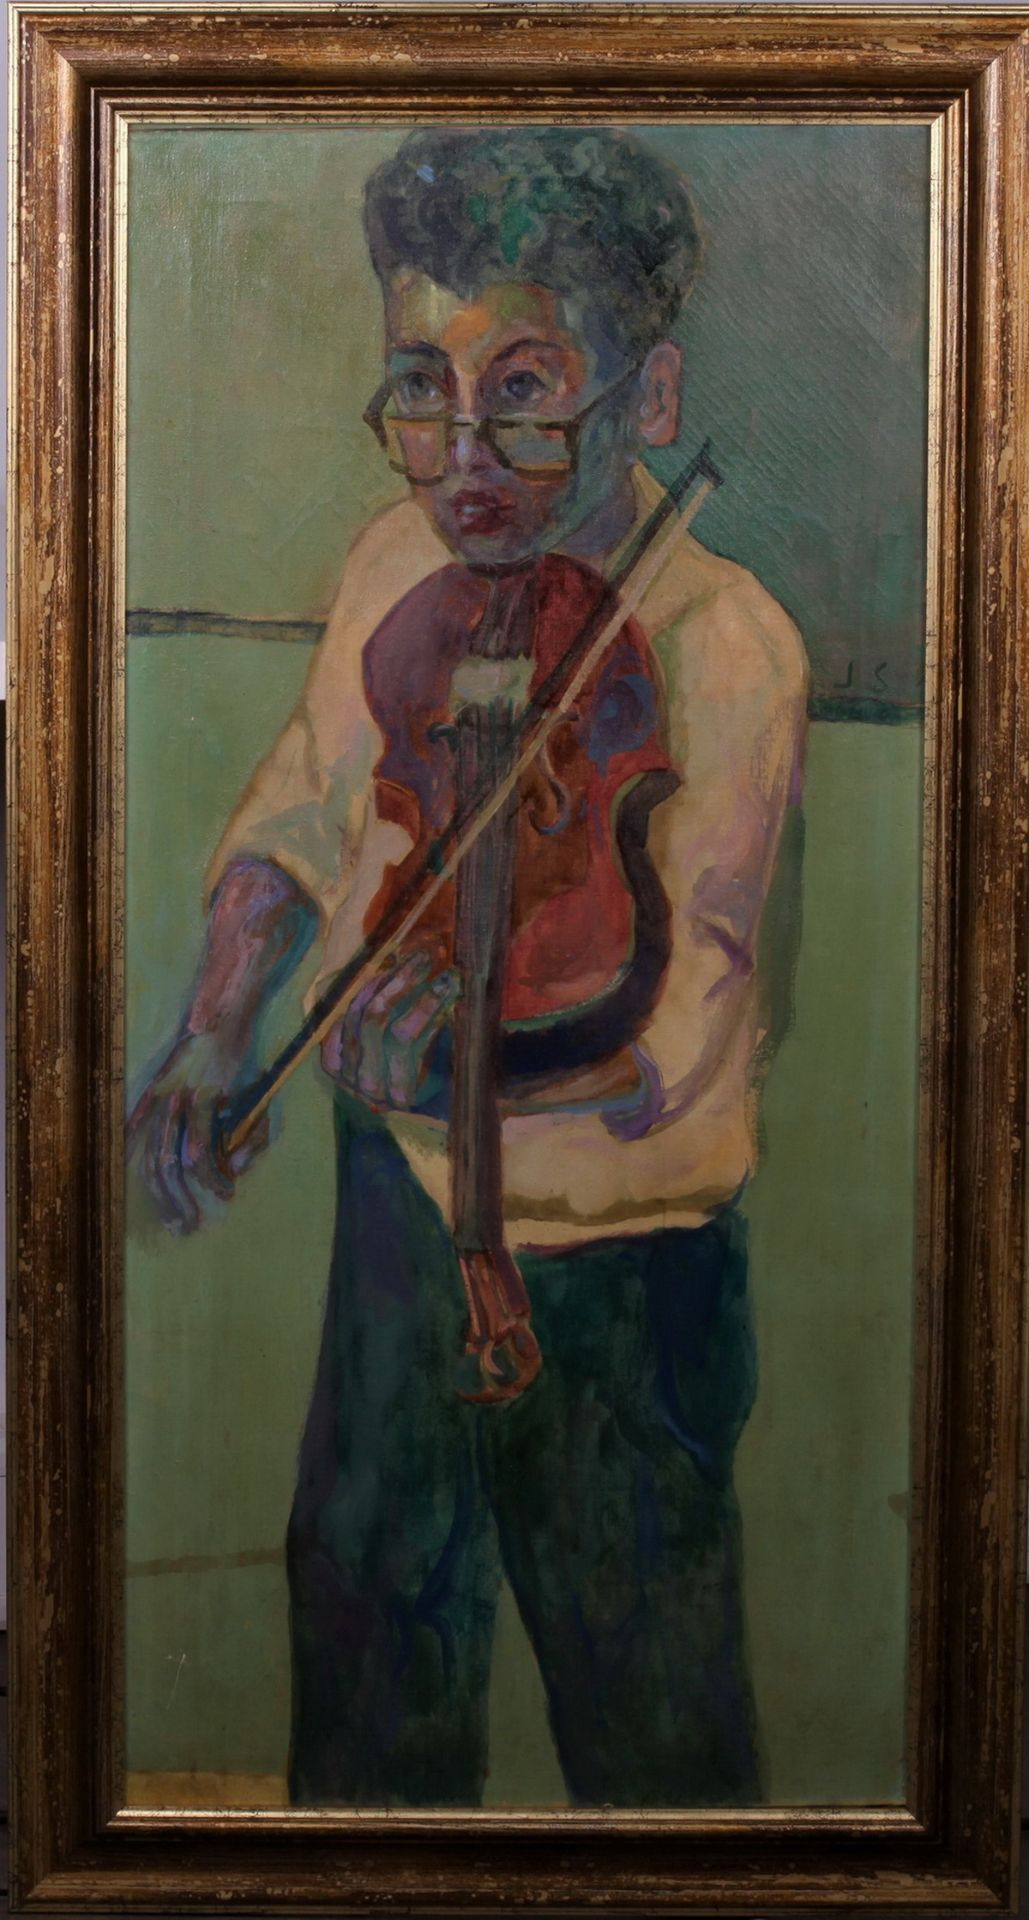 Solman, Joseph. A young boy with a violin. Signed and framed. 1950s. Oil on canvas. 97x46 cm. - Bild 2 aus 2